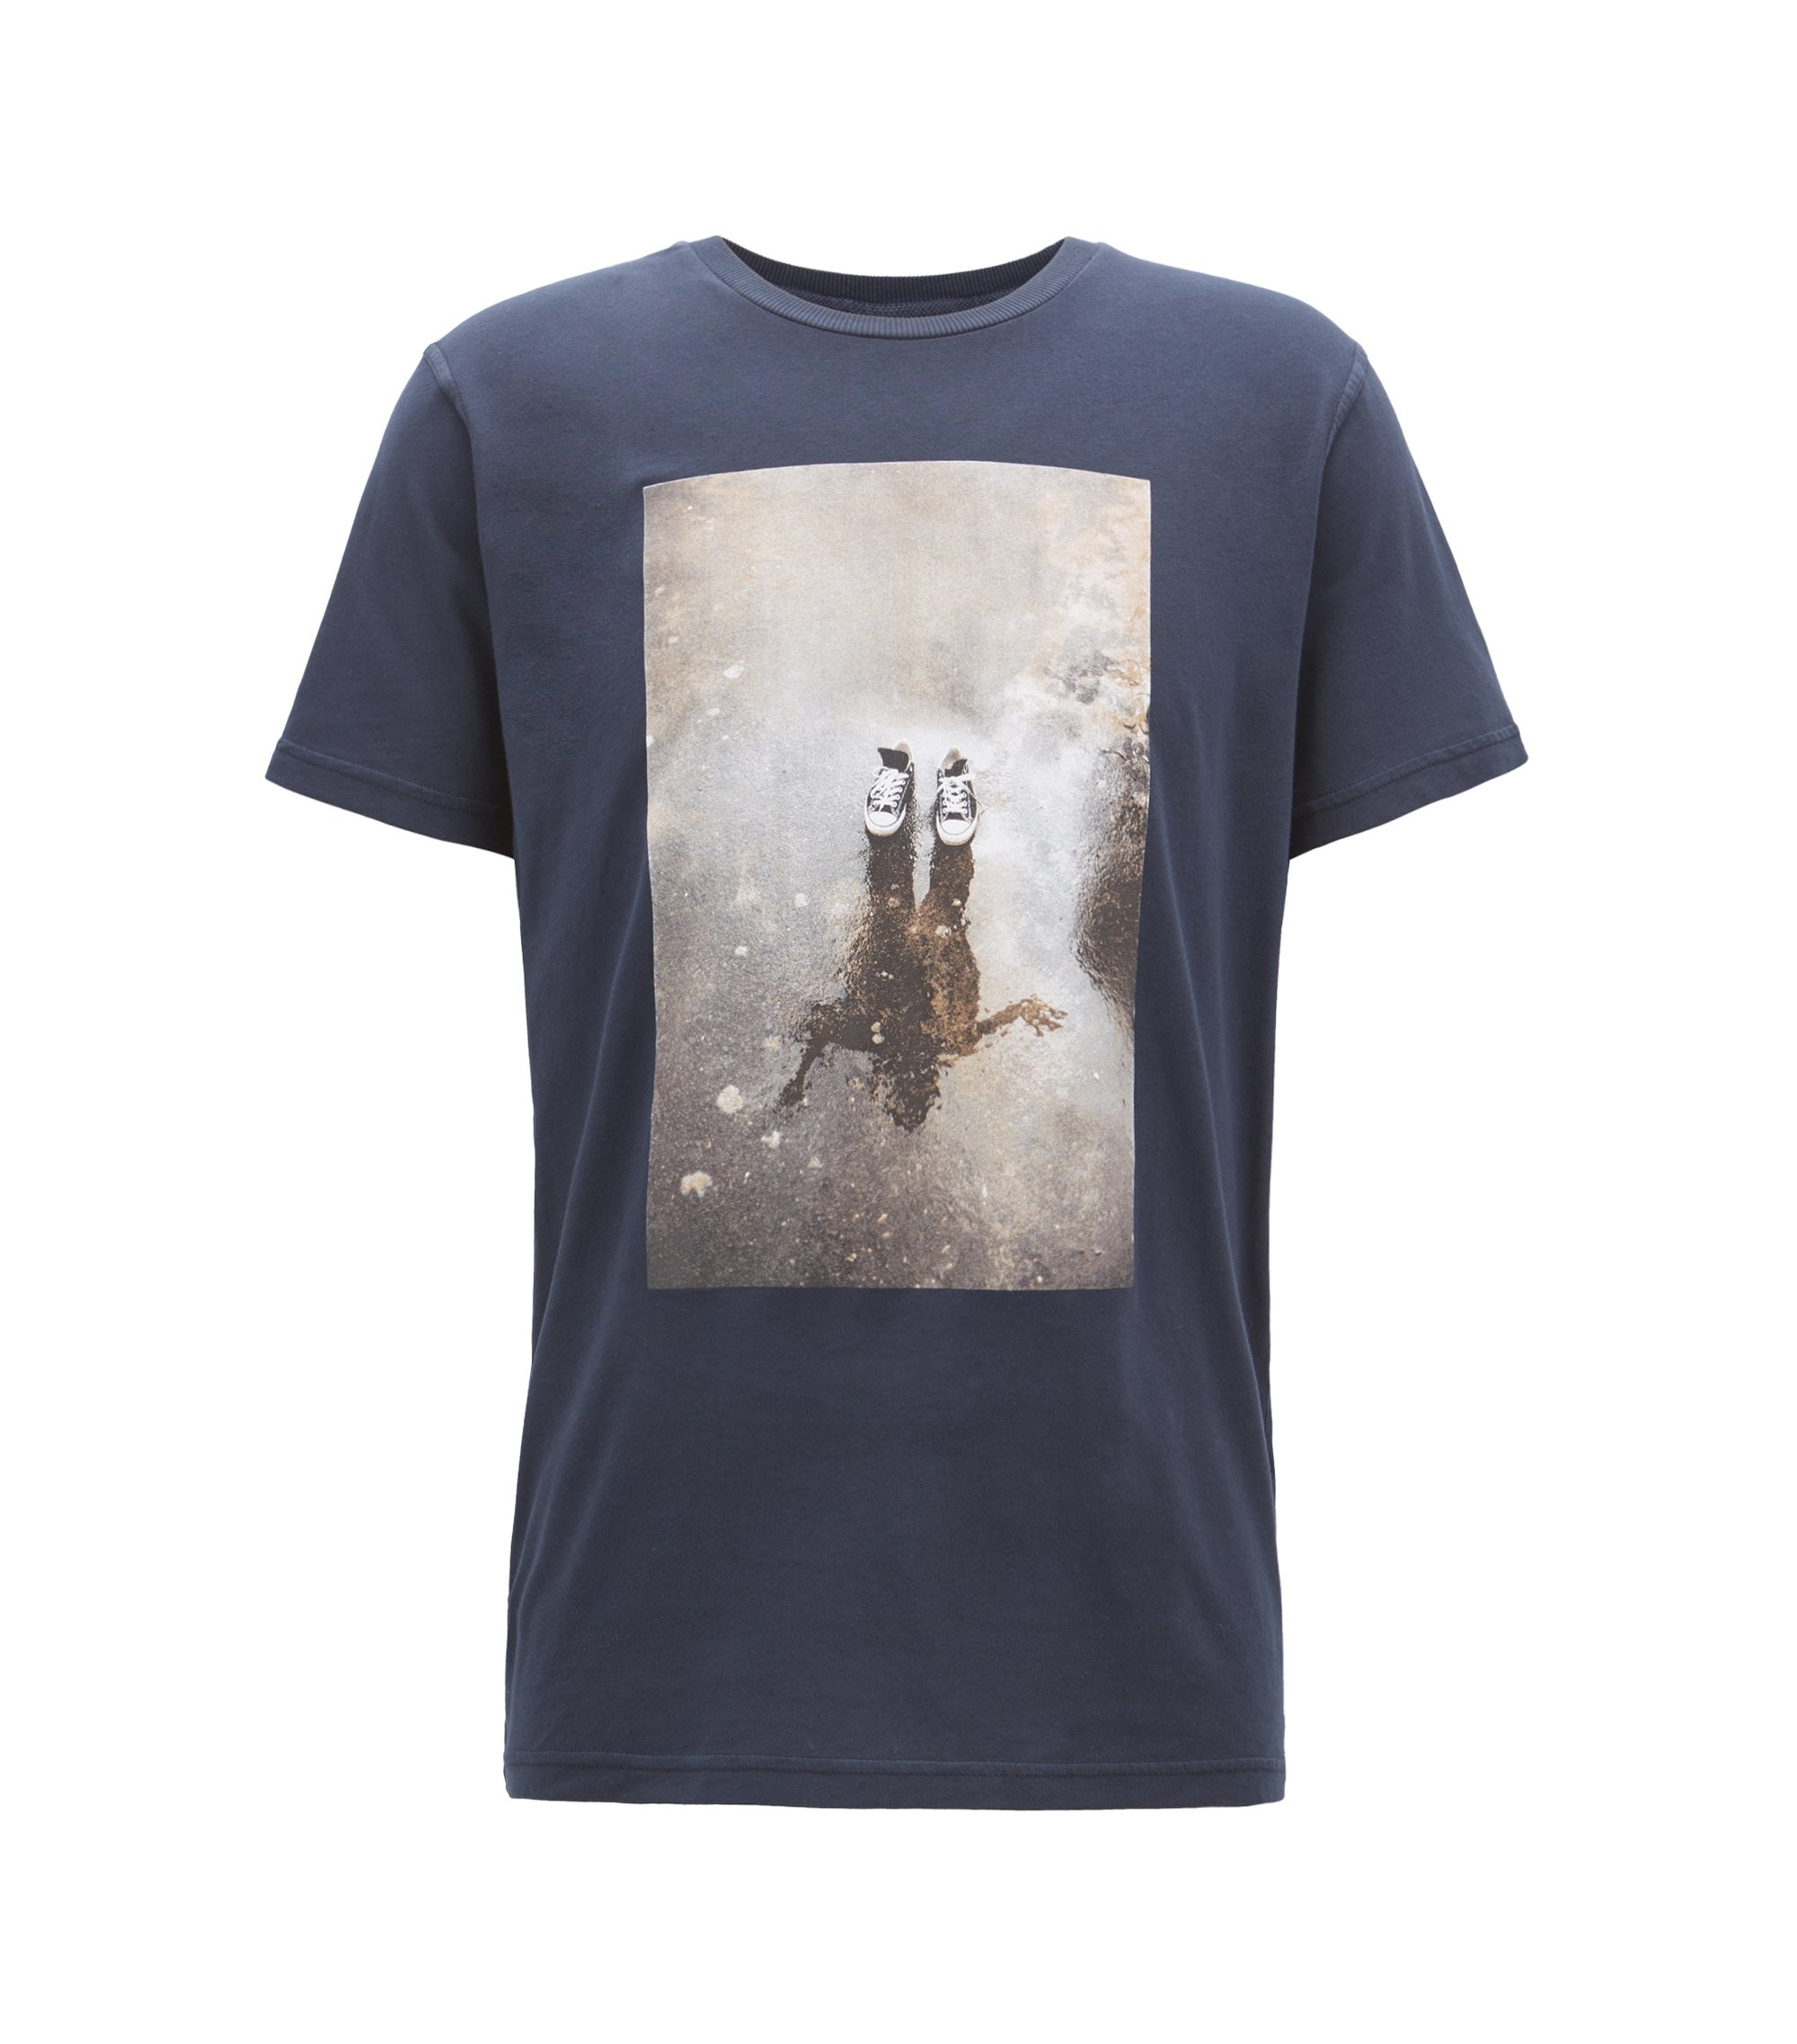 Relaxed-fit graphic T-shirt in recot²® cotton jersey, Dark Blue